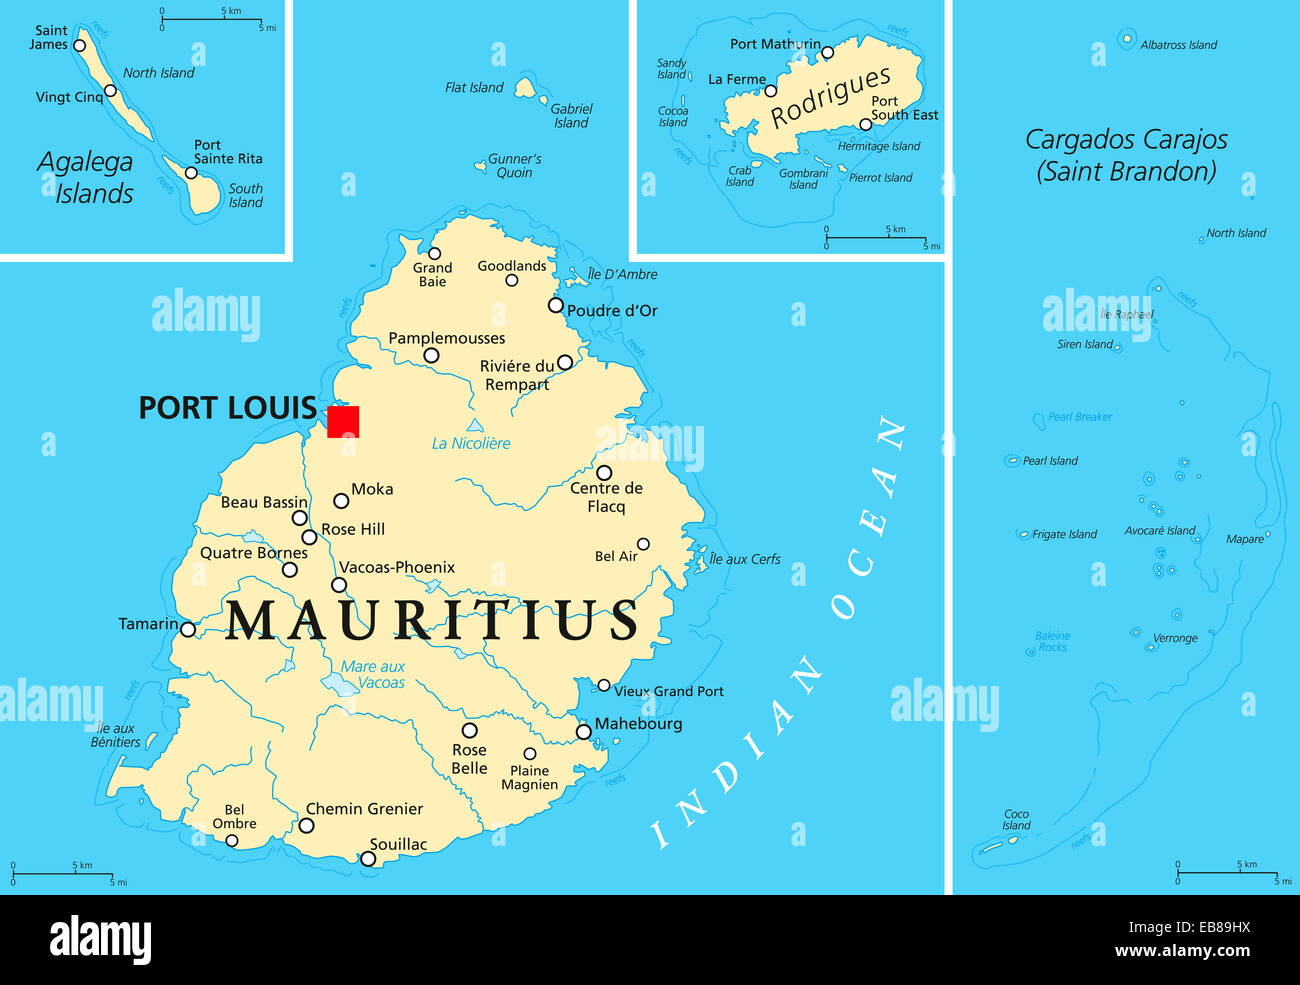 Map Of Island Of Mauritius In The Indian Ocean